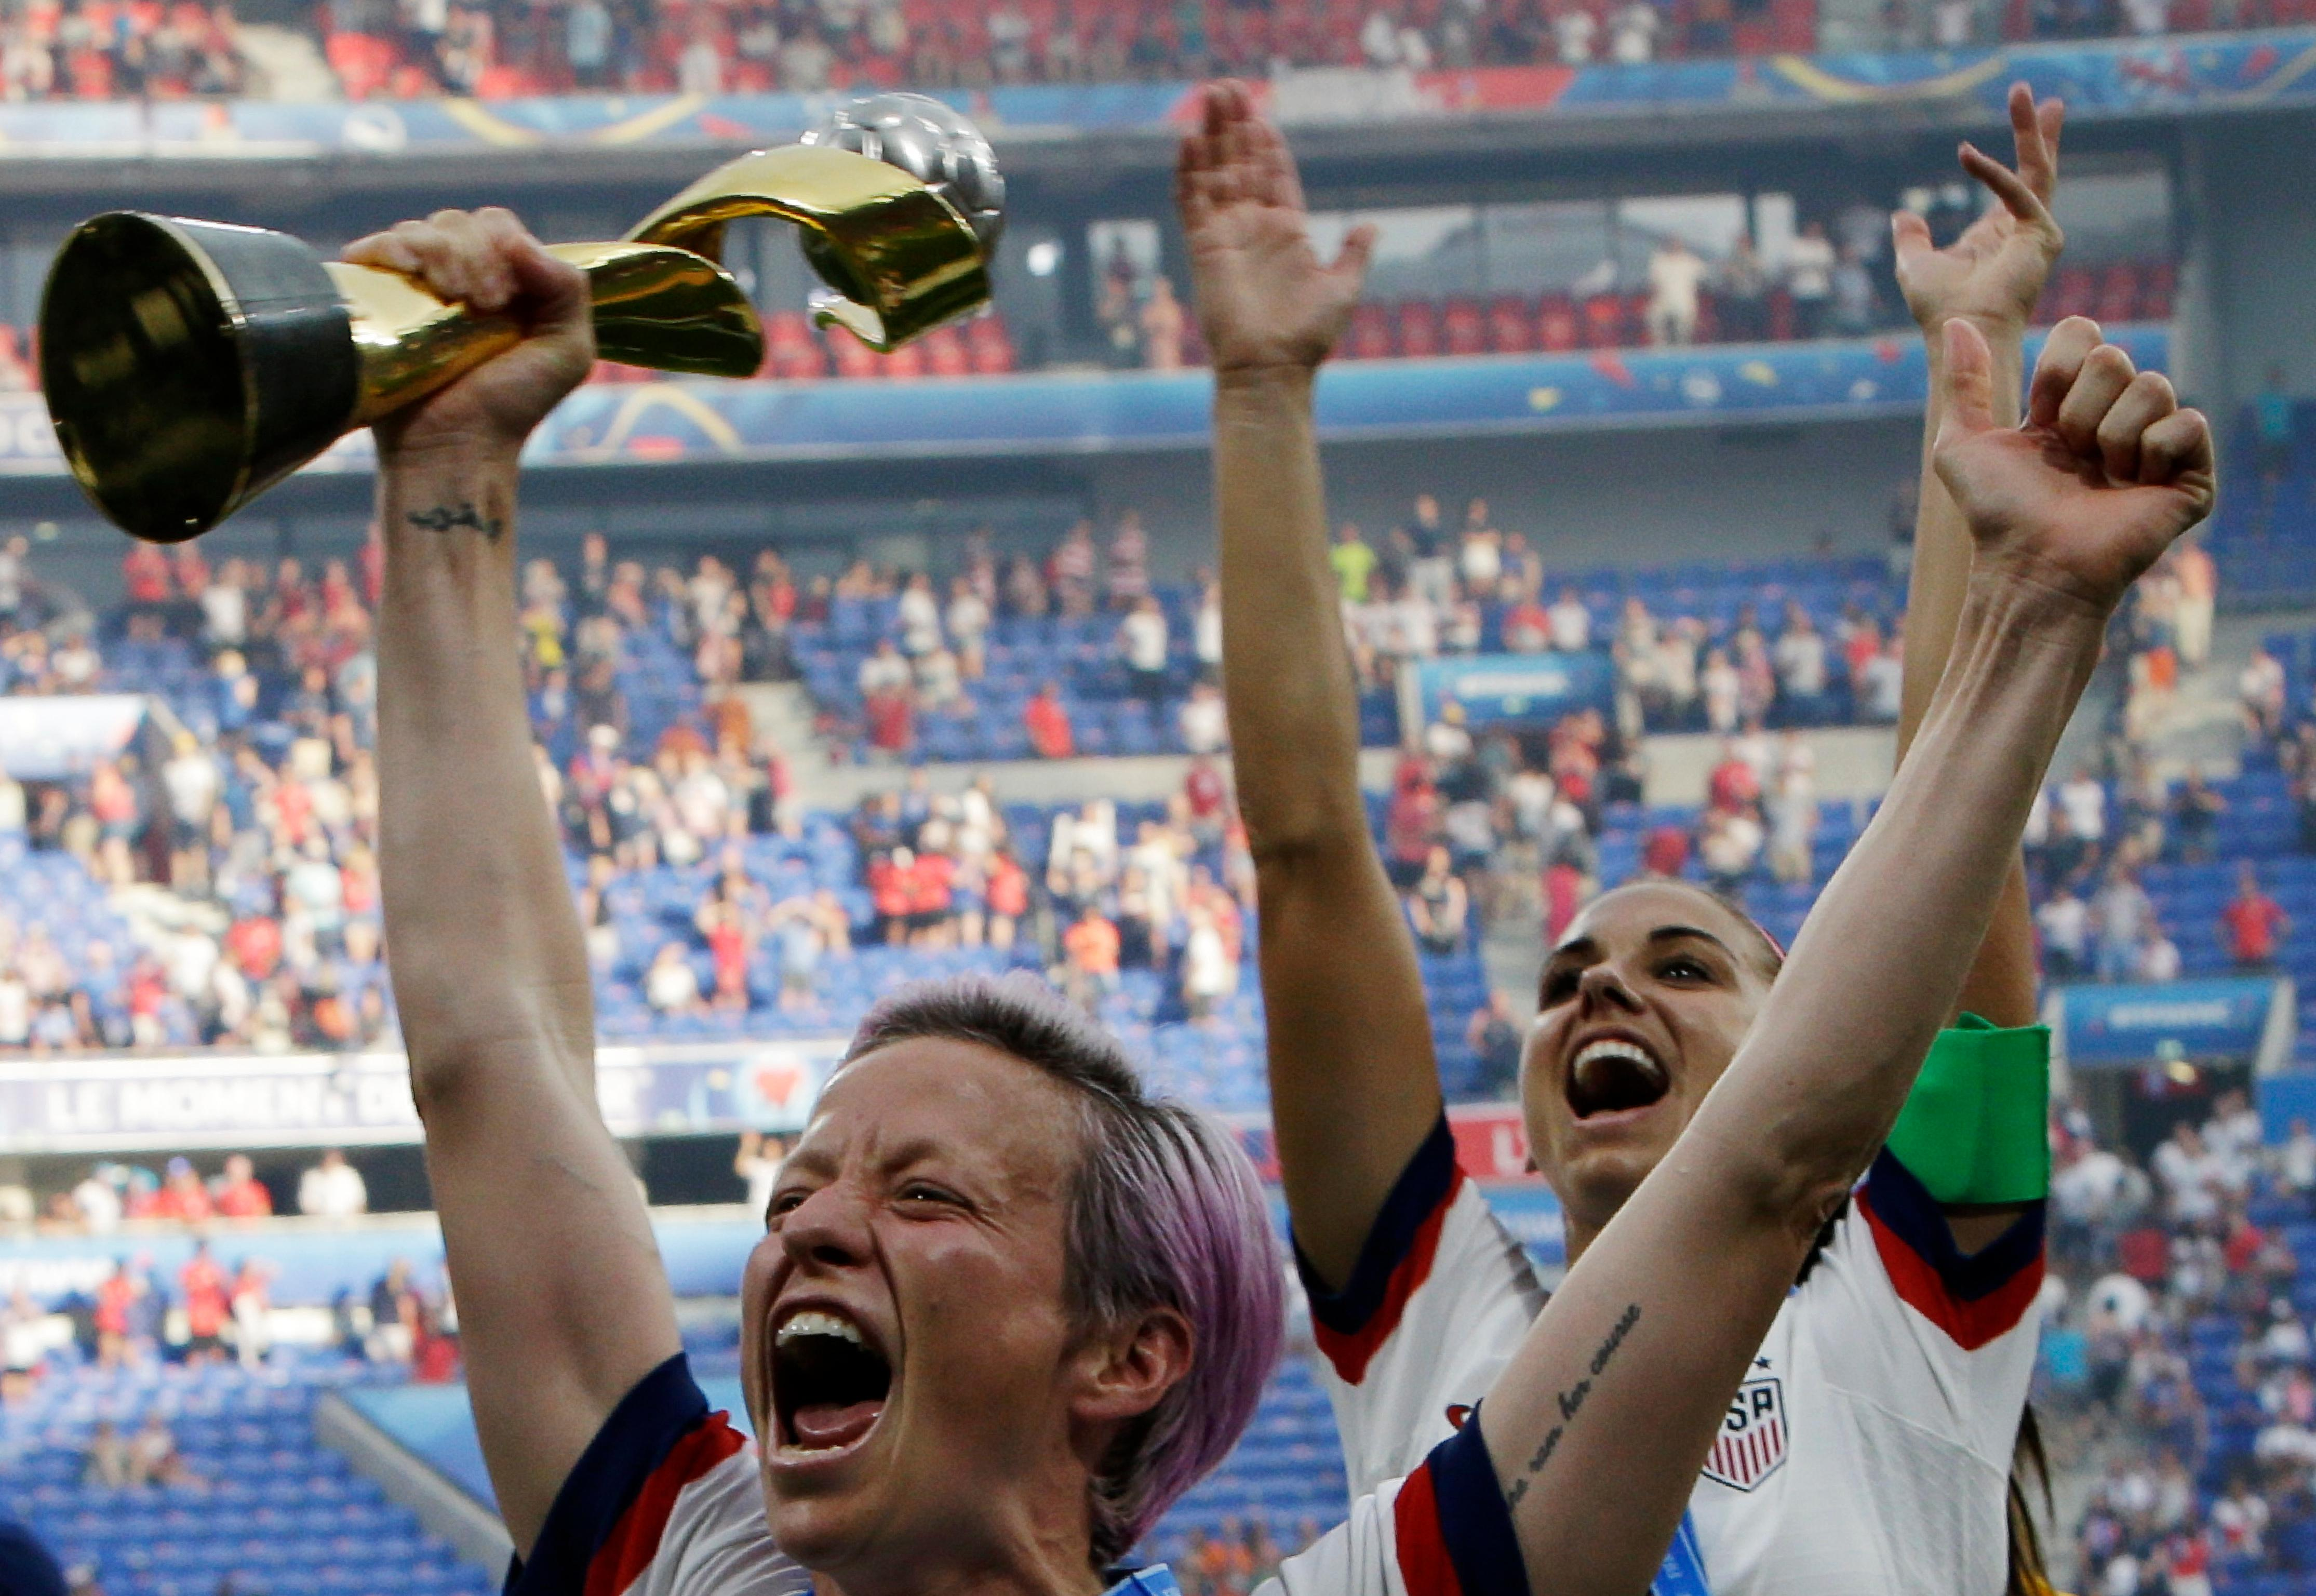 United States' Megan Rapinoe, left, and Alex Morgan celebrate with the trophy after winning the Women's World Cup final soccer match between US and The Netherlands at the Stade de Lyon in Decines, outside Lyon, France, Sunday, July 7, 2019. (AP Photo/Claude Paris)